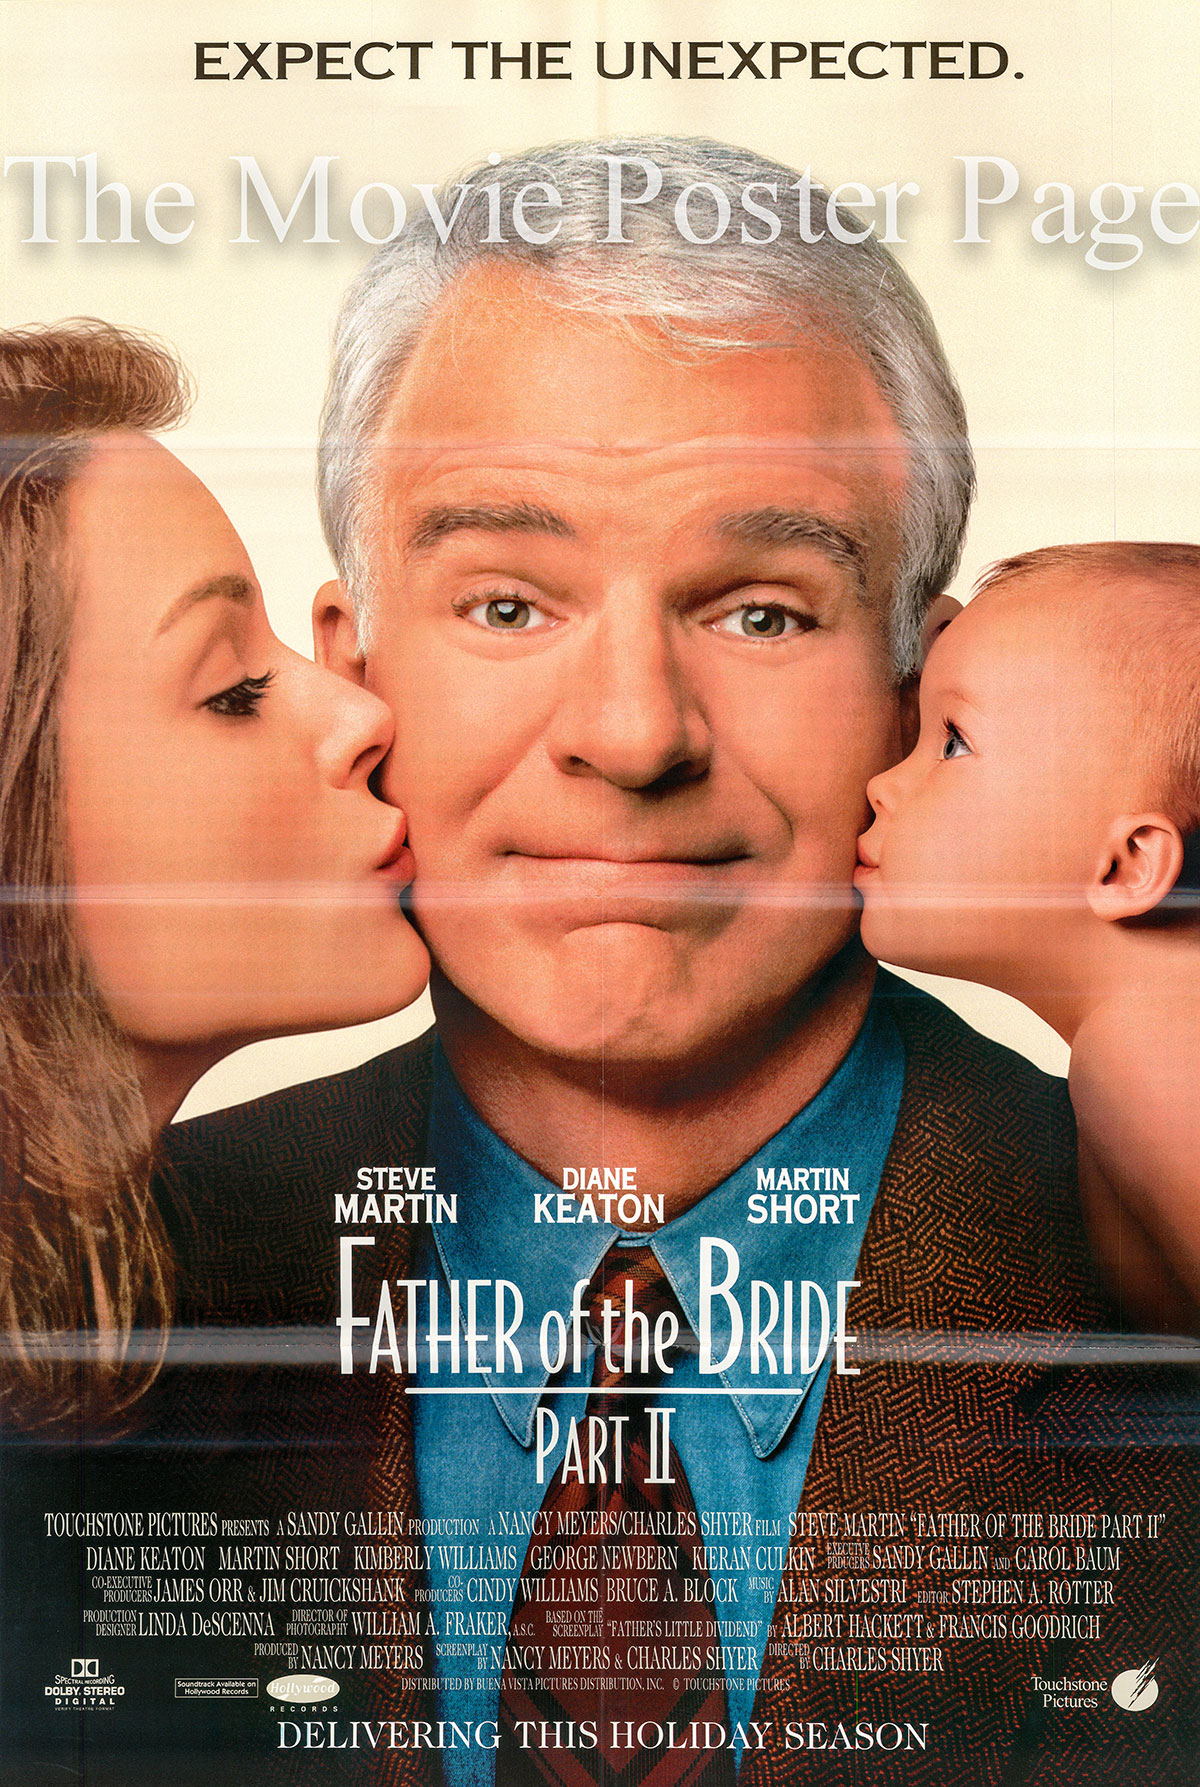 Pictured is a US one-sheet for t995 Charles Shyer film Father of the Bride Part II starring Steve Martin as George Banks.